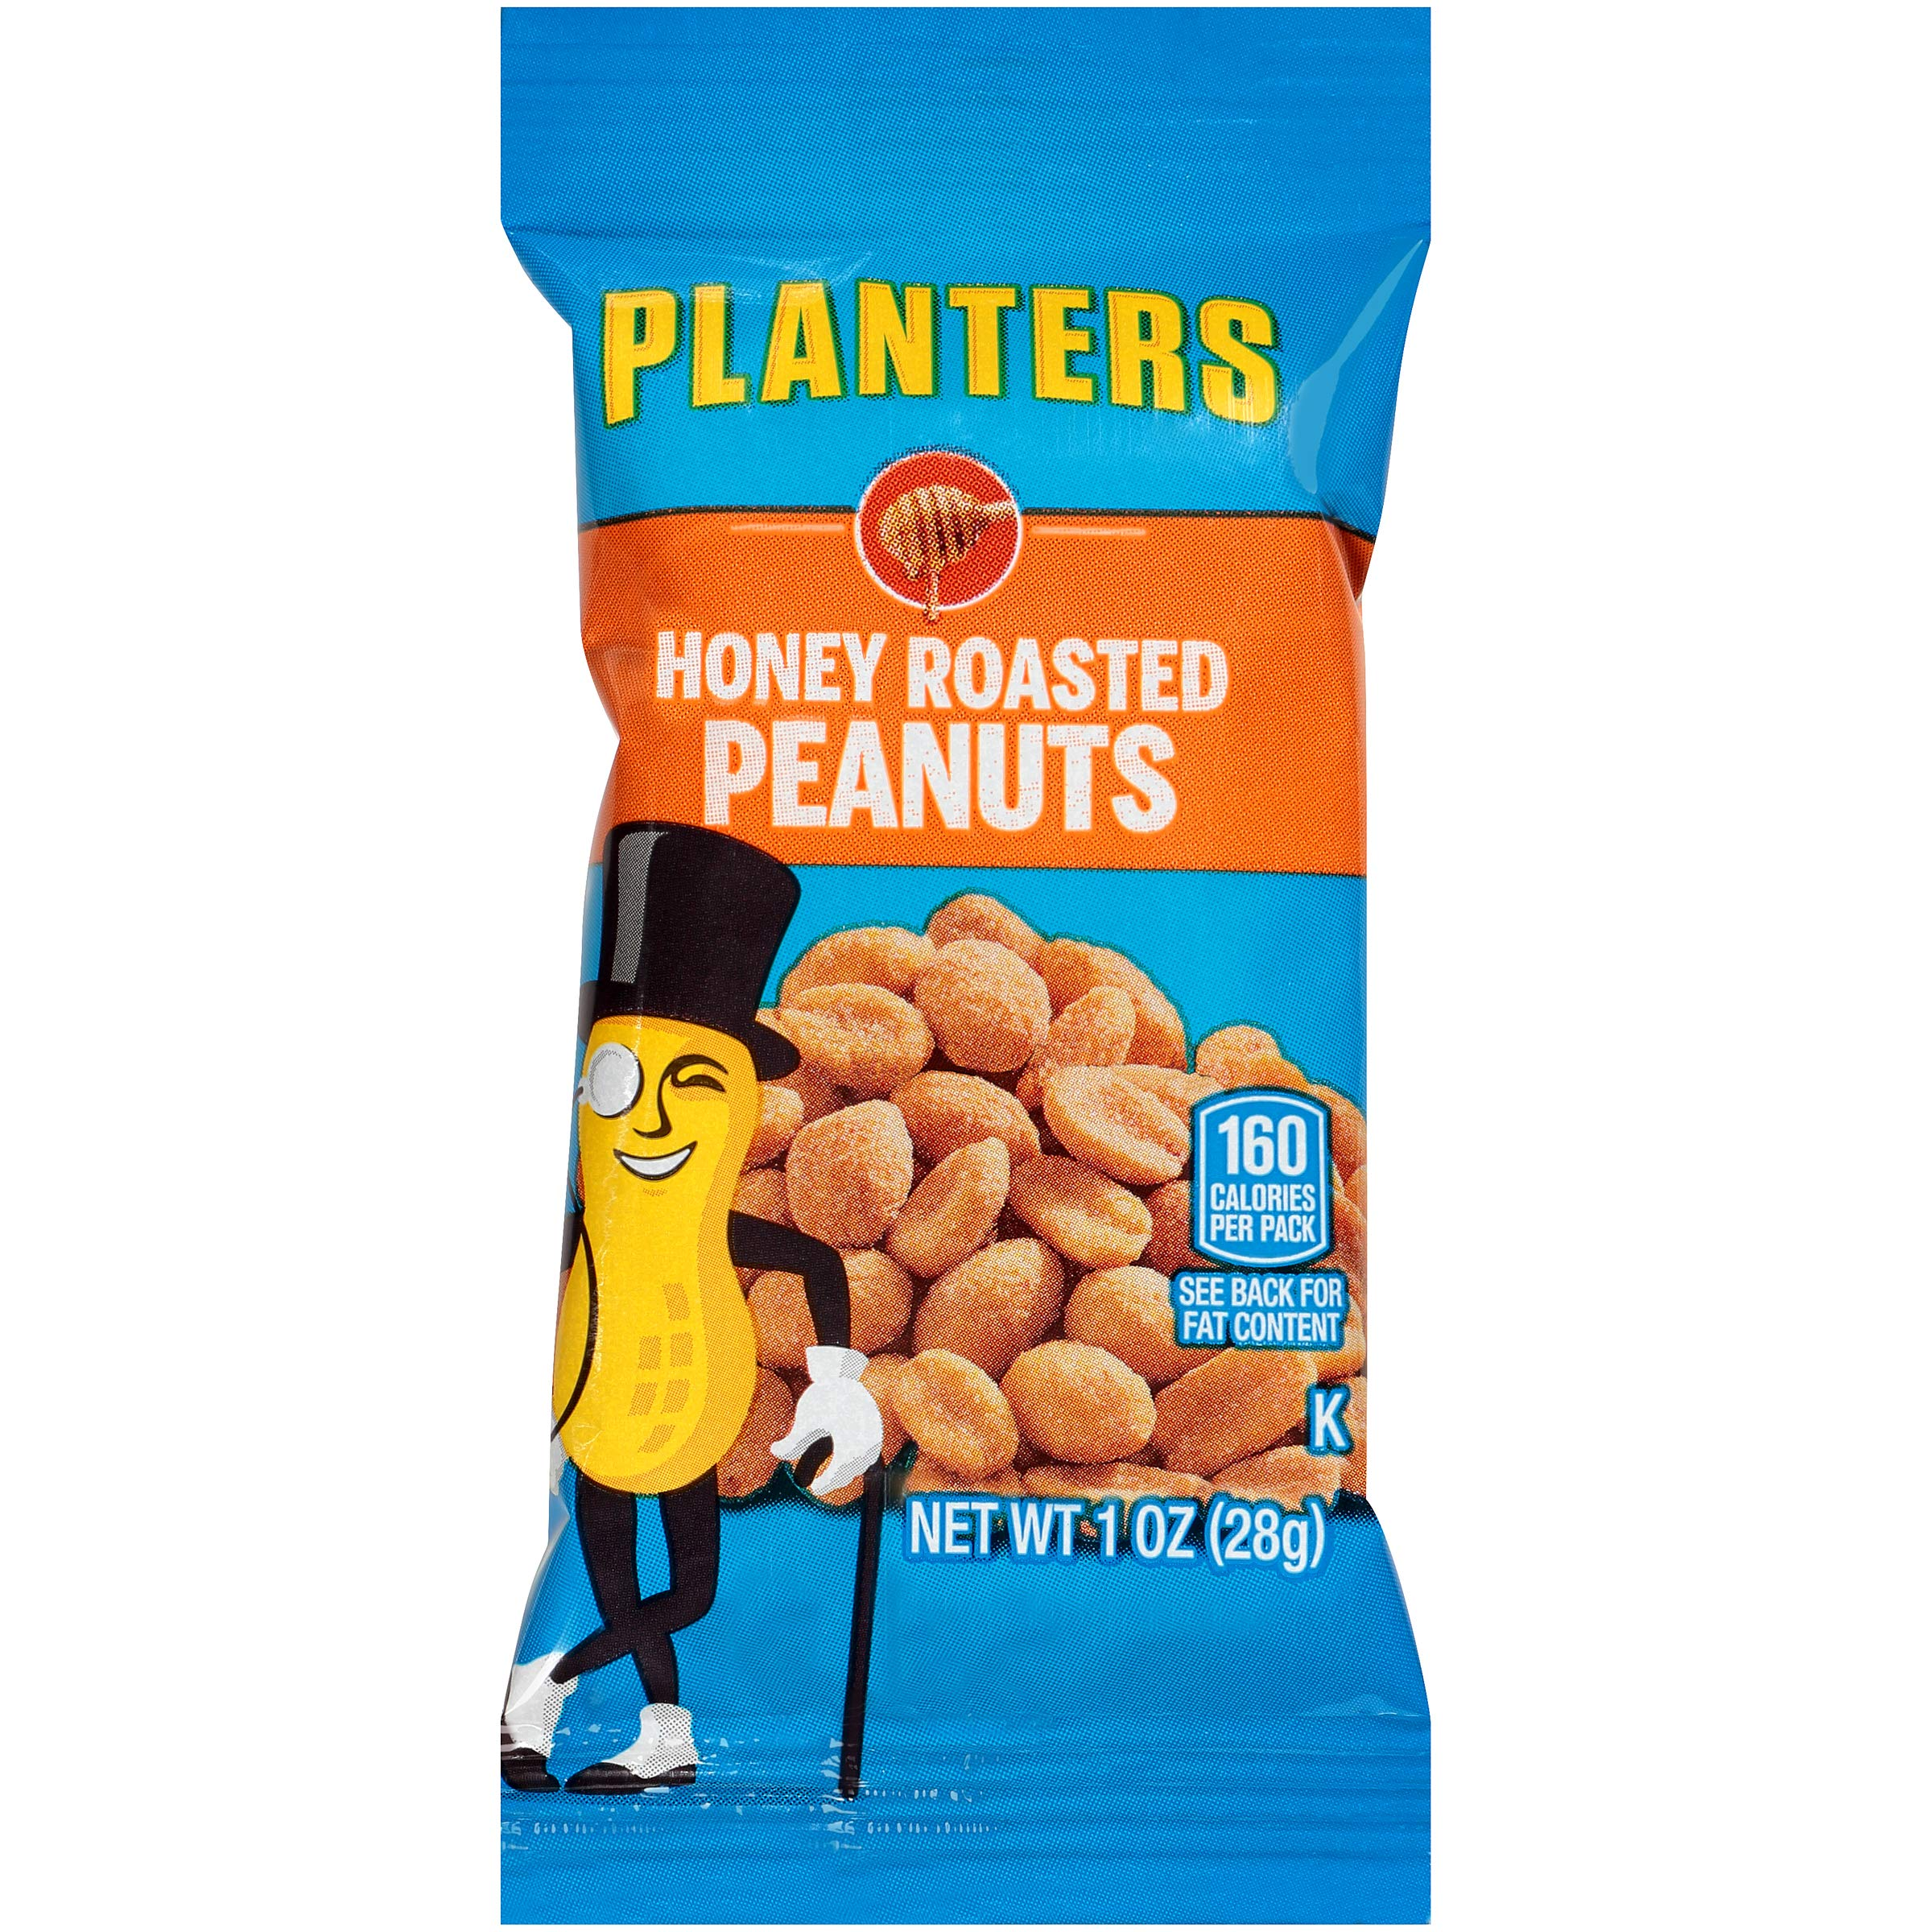 Planters Honey Roasted Peanuts (1 oz Bags, Pack of 144) by Planters